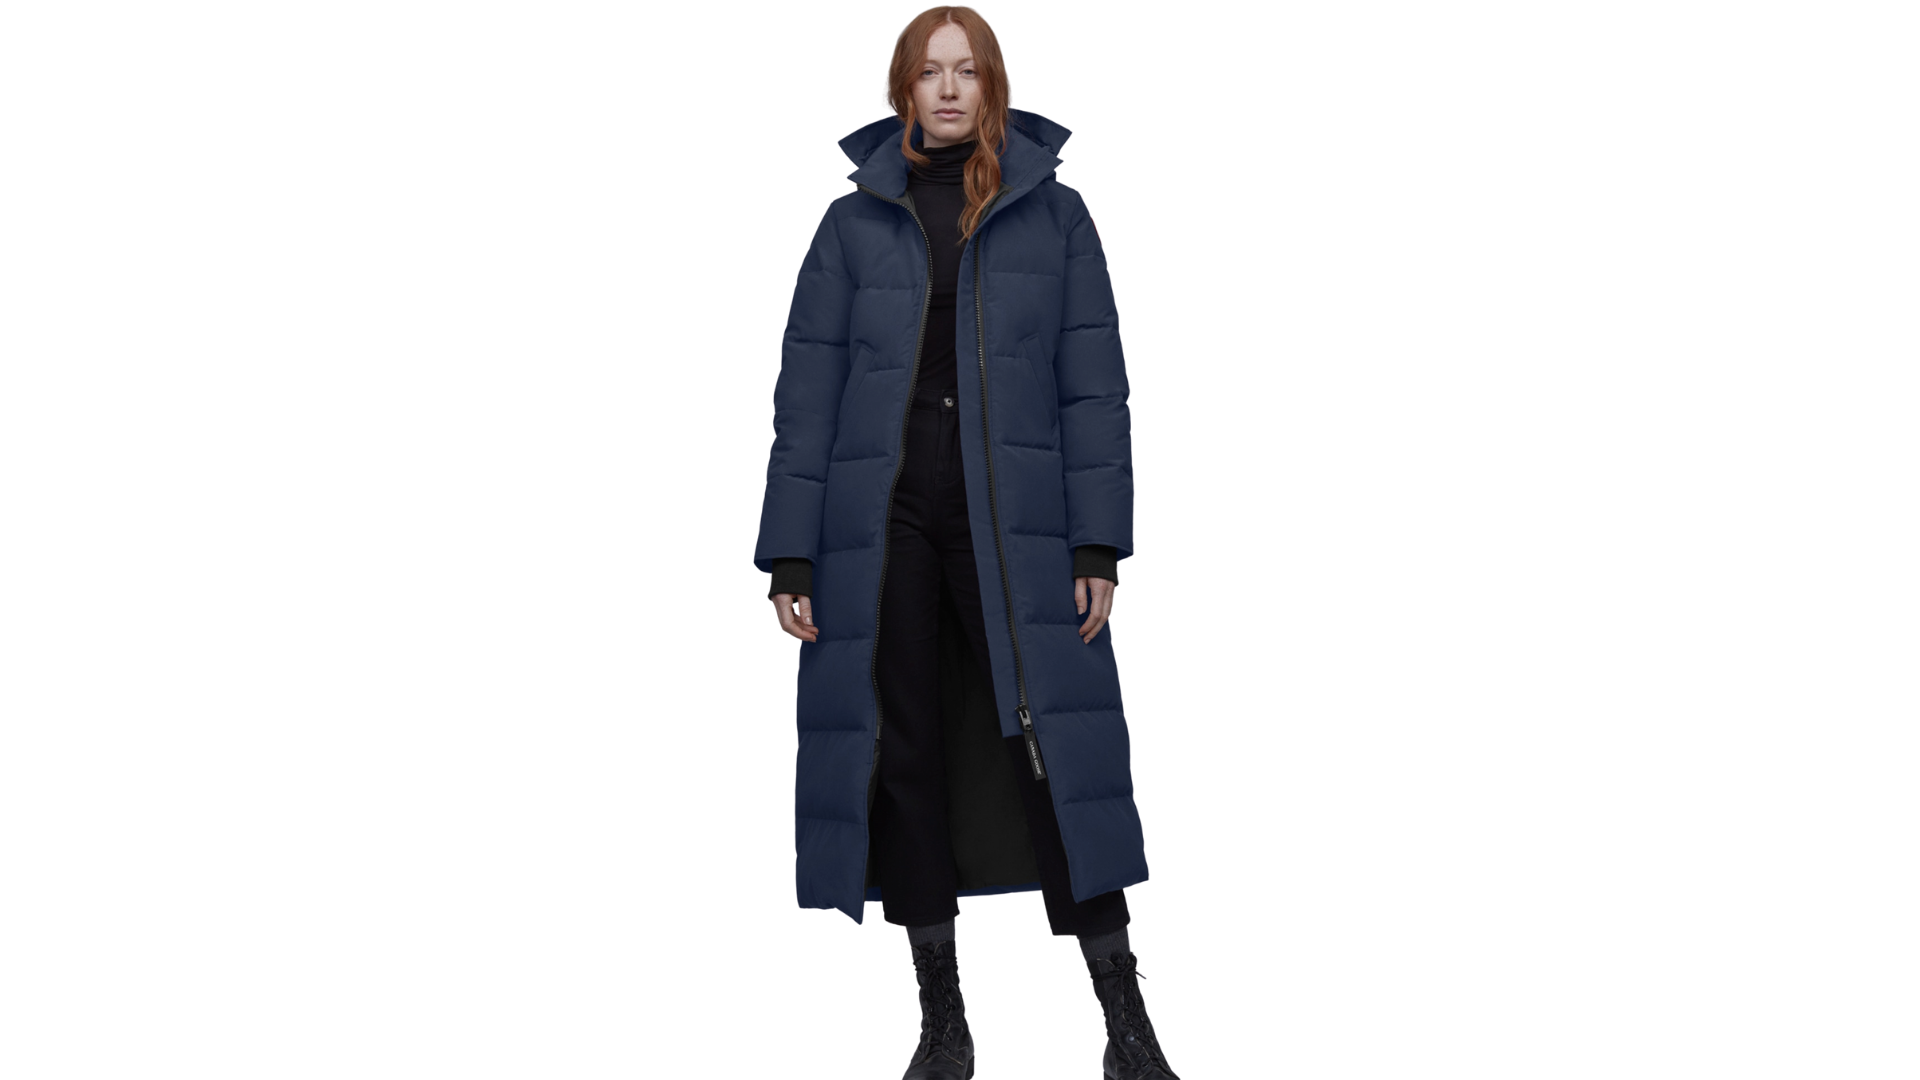 canada goose parka best women's winter coats for extreme cold